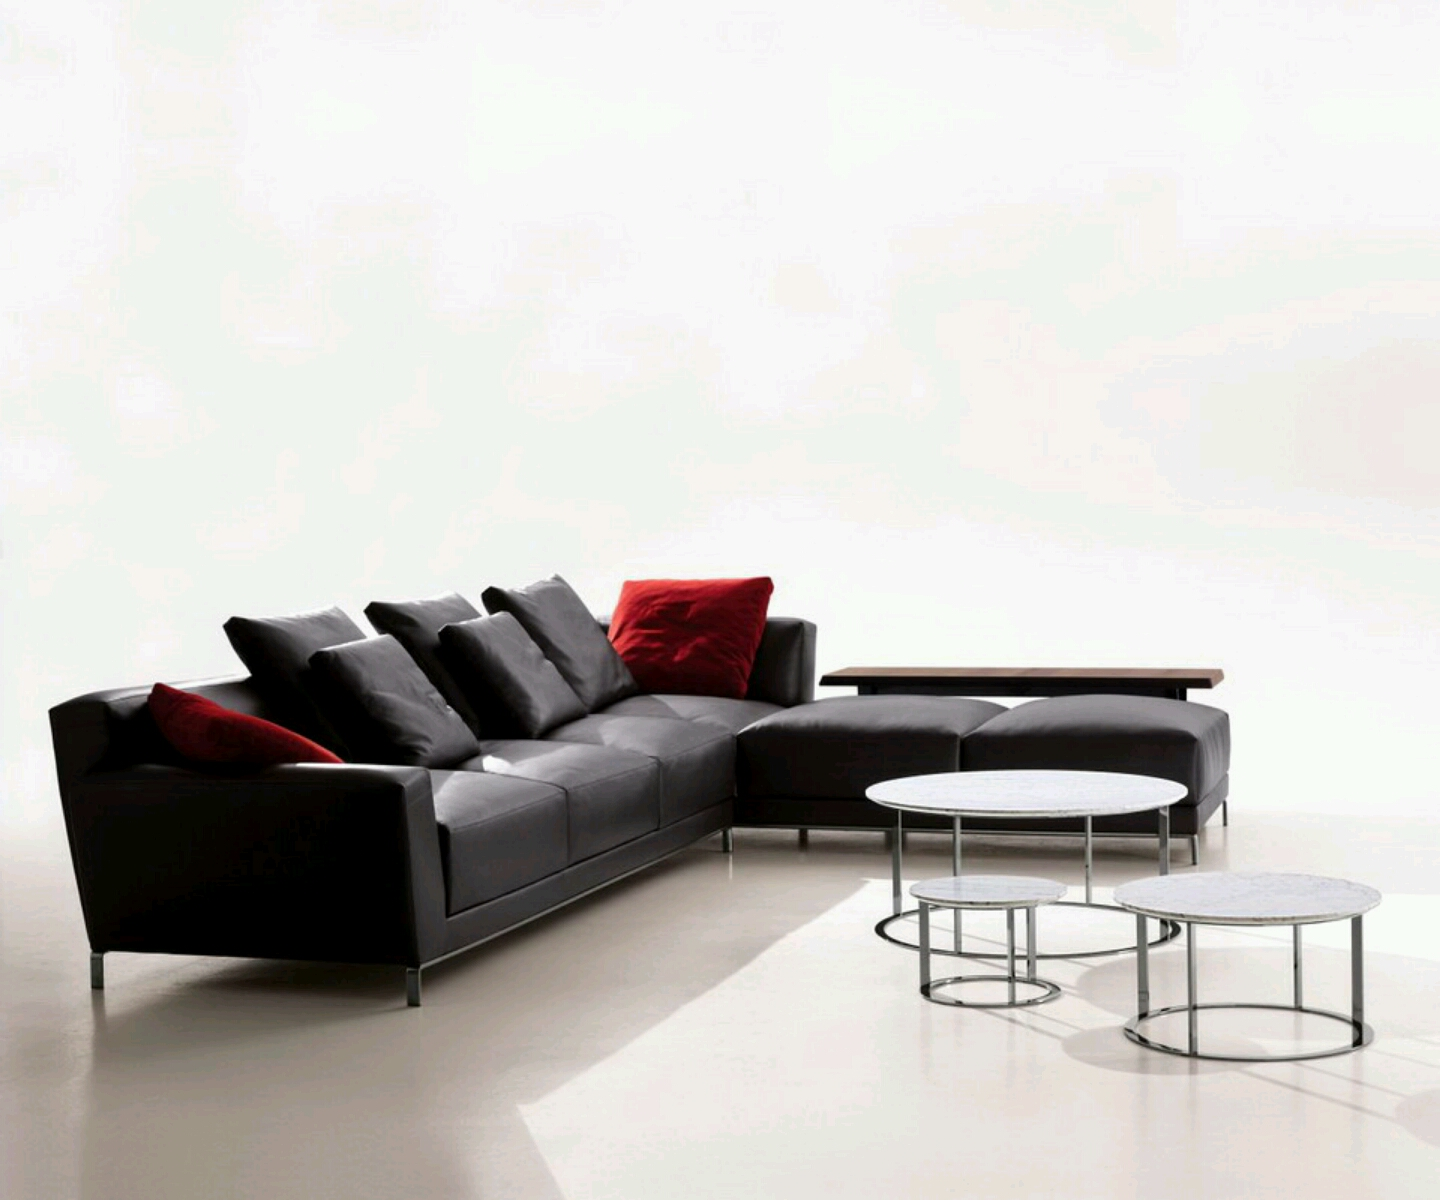 modern sofa designs with beautiful cushion styles. Black Bedroom Furniture Sets. Home Design Ideas